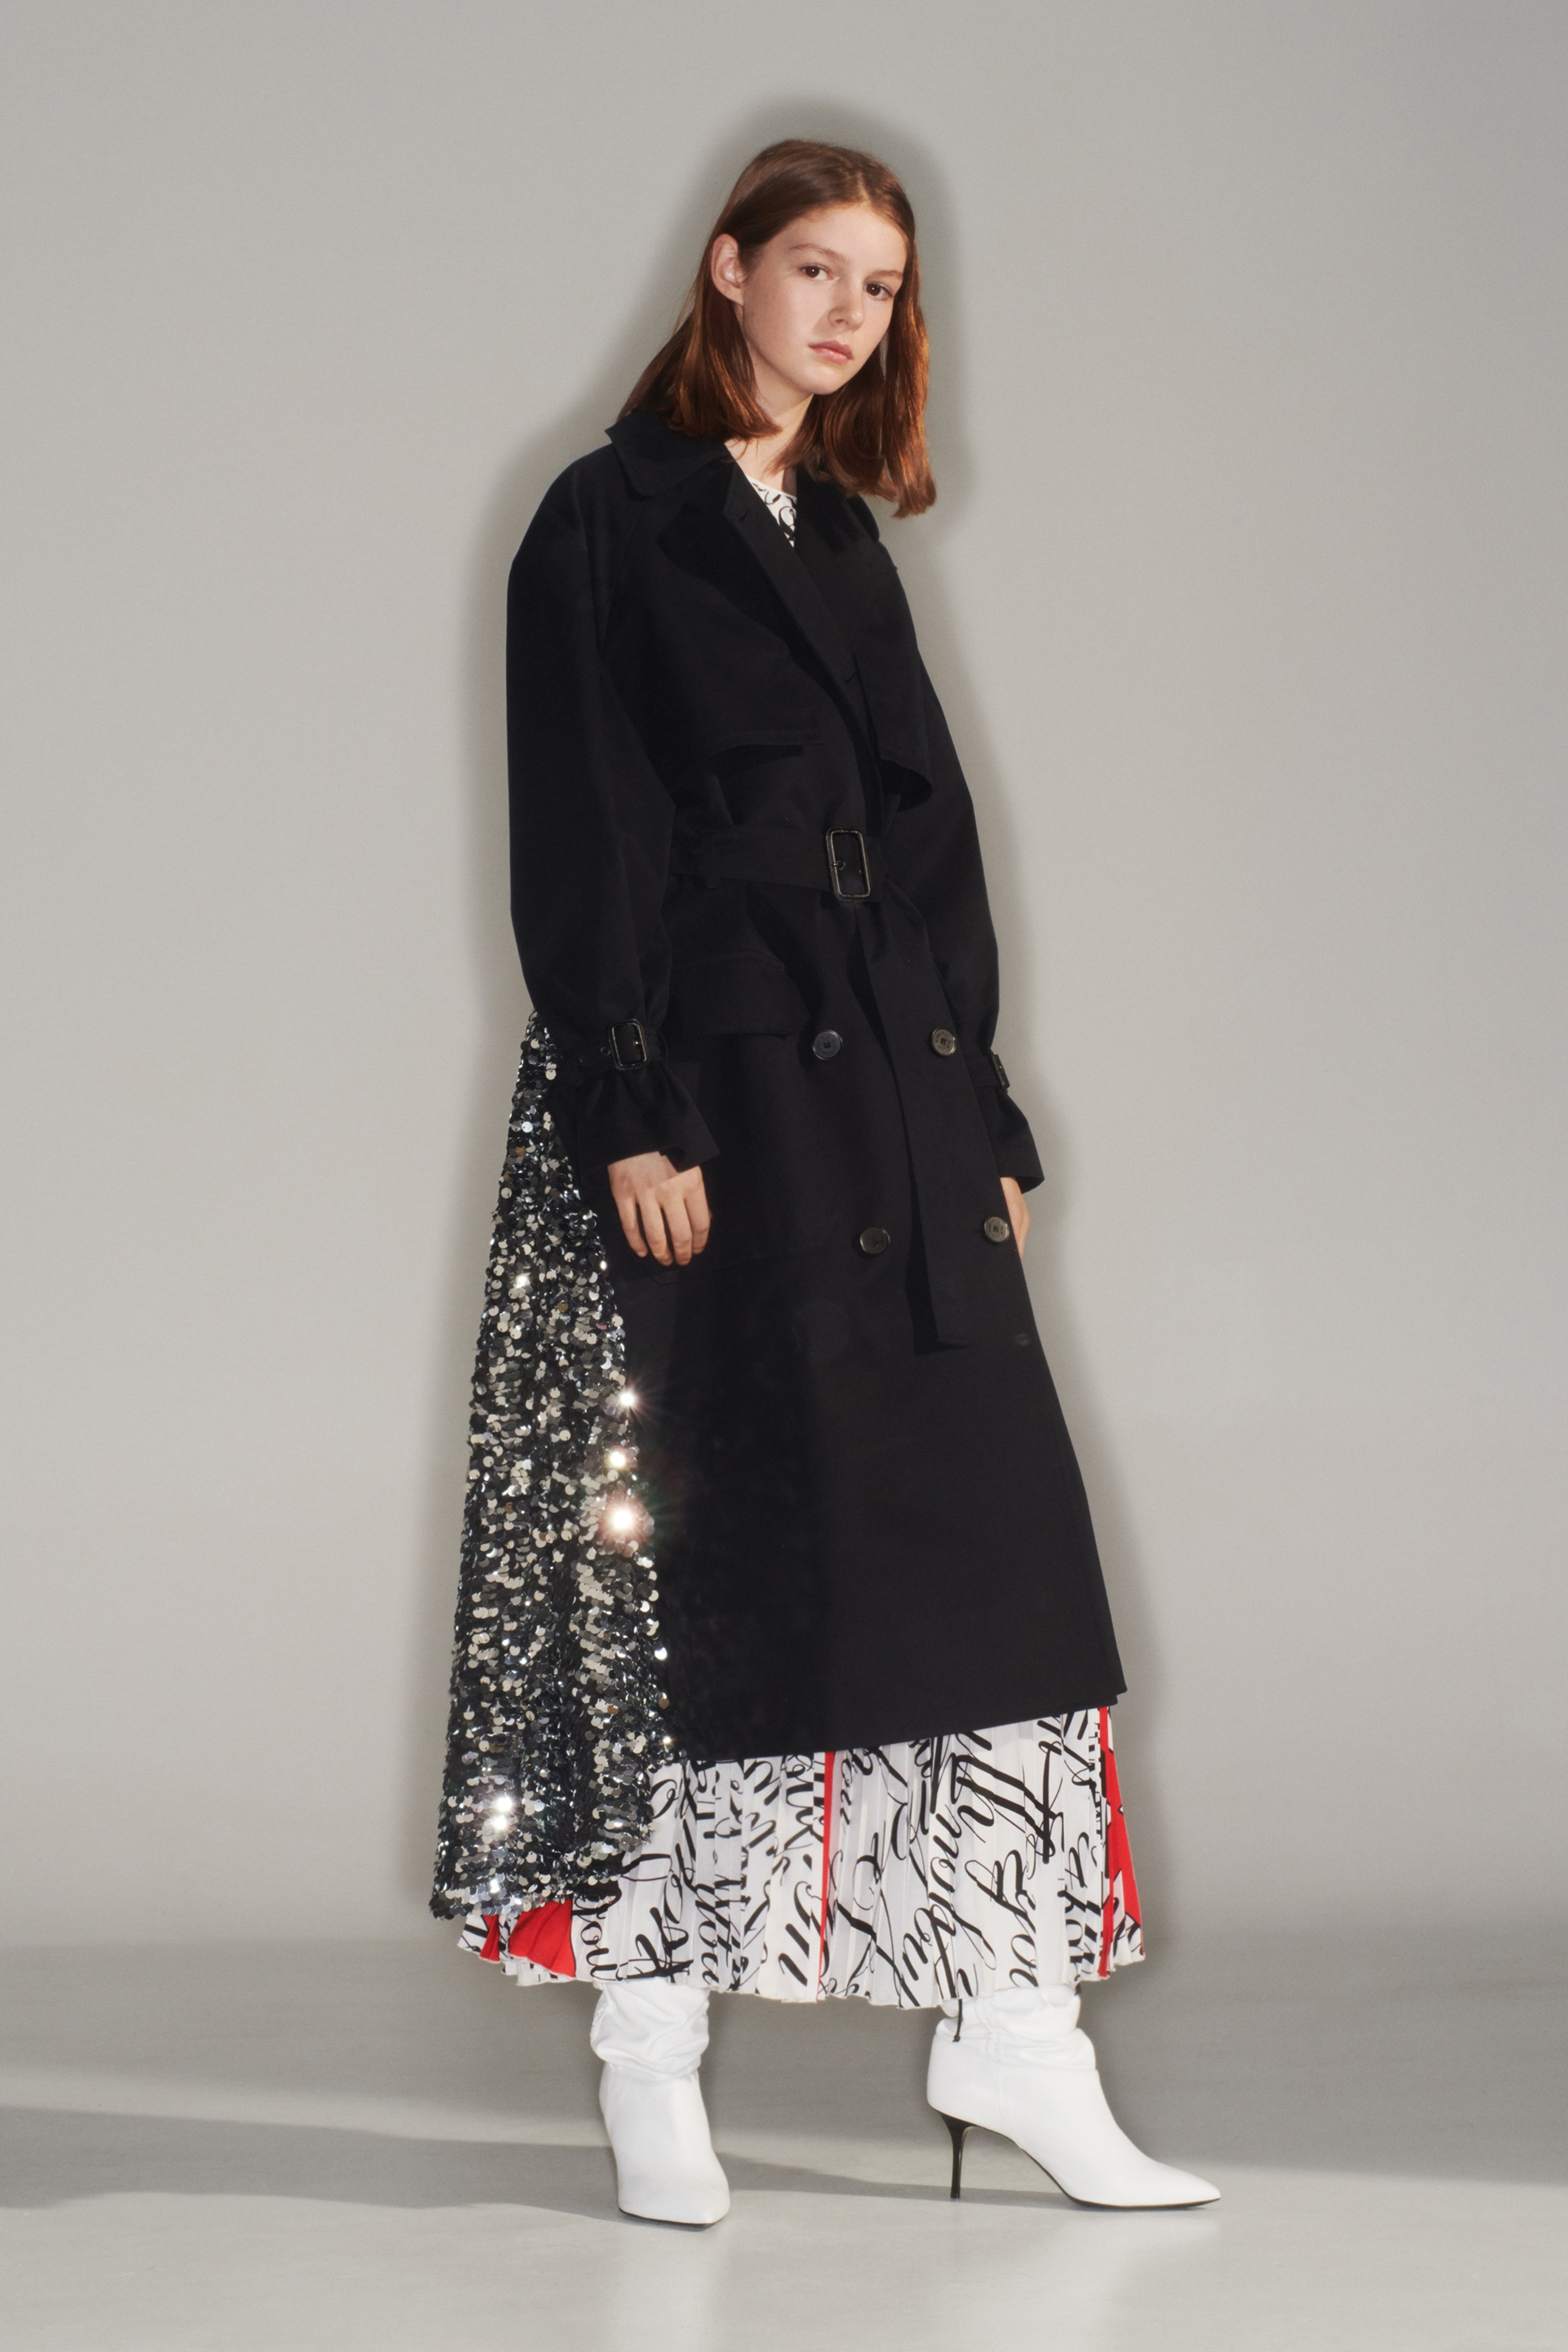 MSGM Pre-Fall 2019 Collection